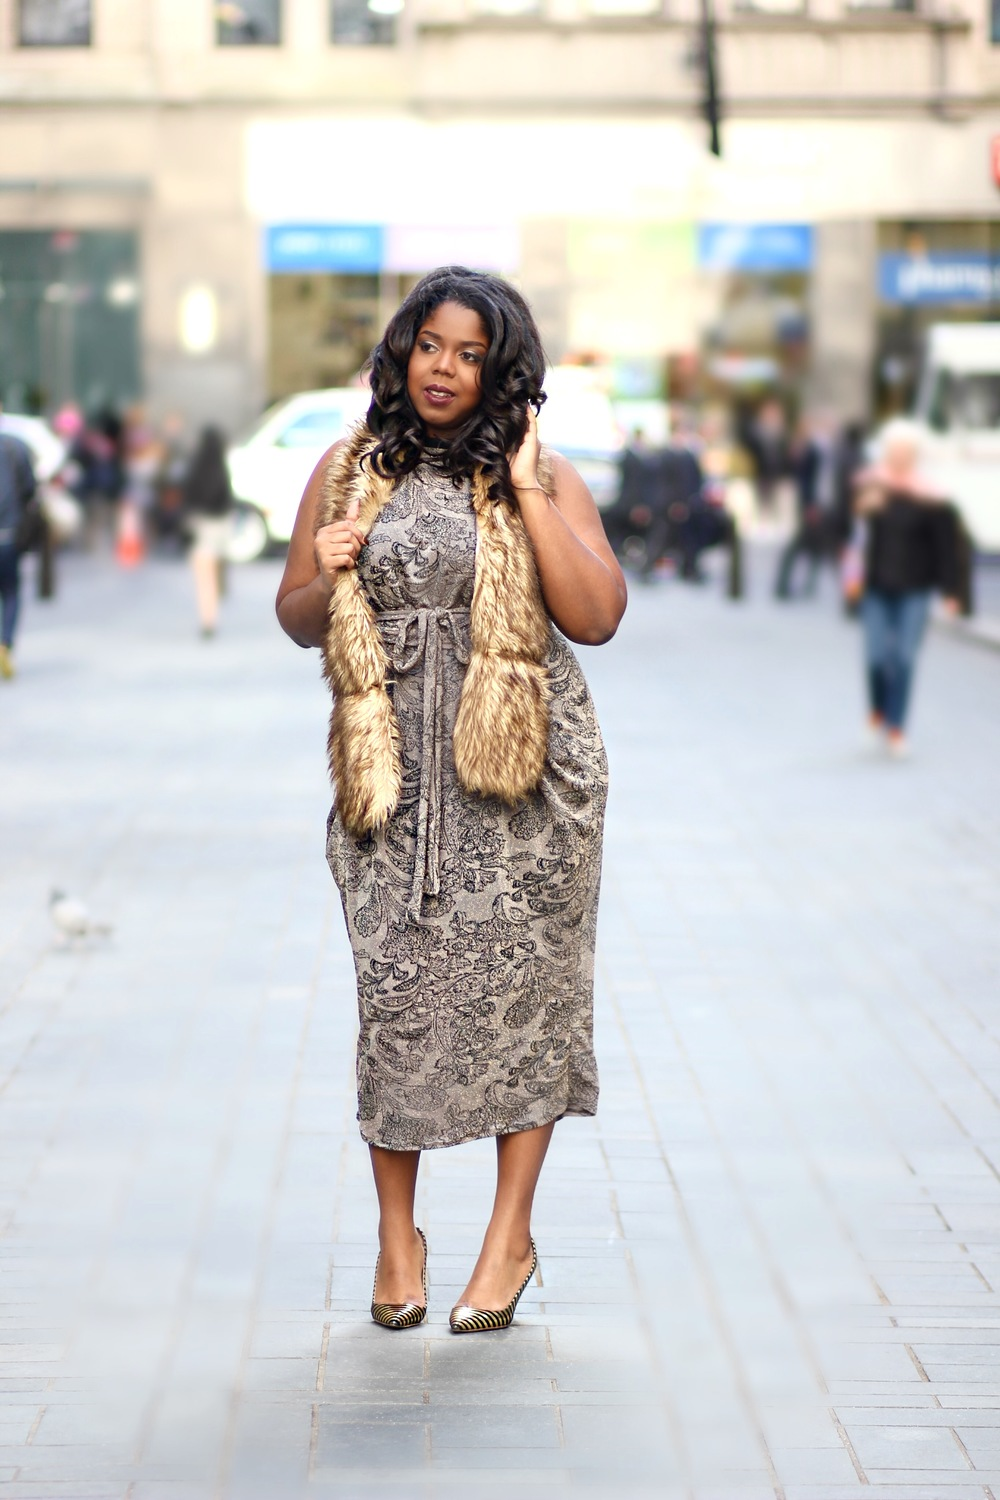 That Hayet Rida Rue107 RueBabe Holiday lookbook Plus Size Blogger Confidence 3.jpeg